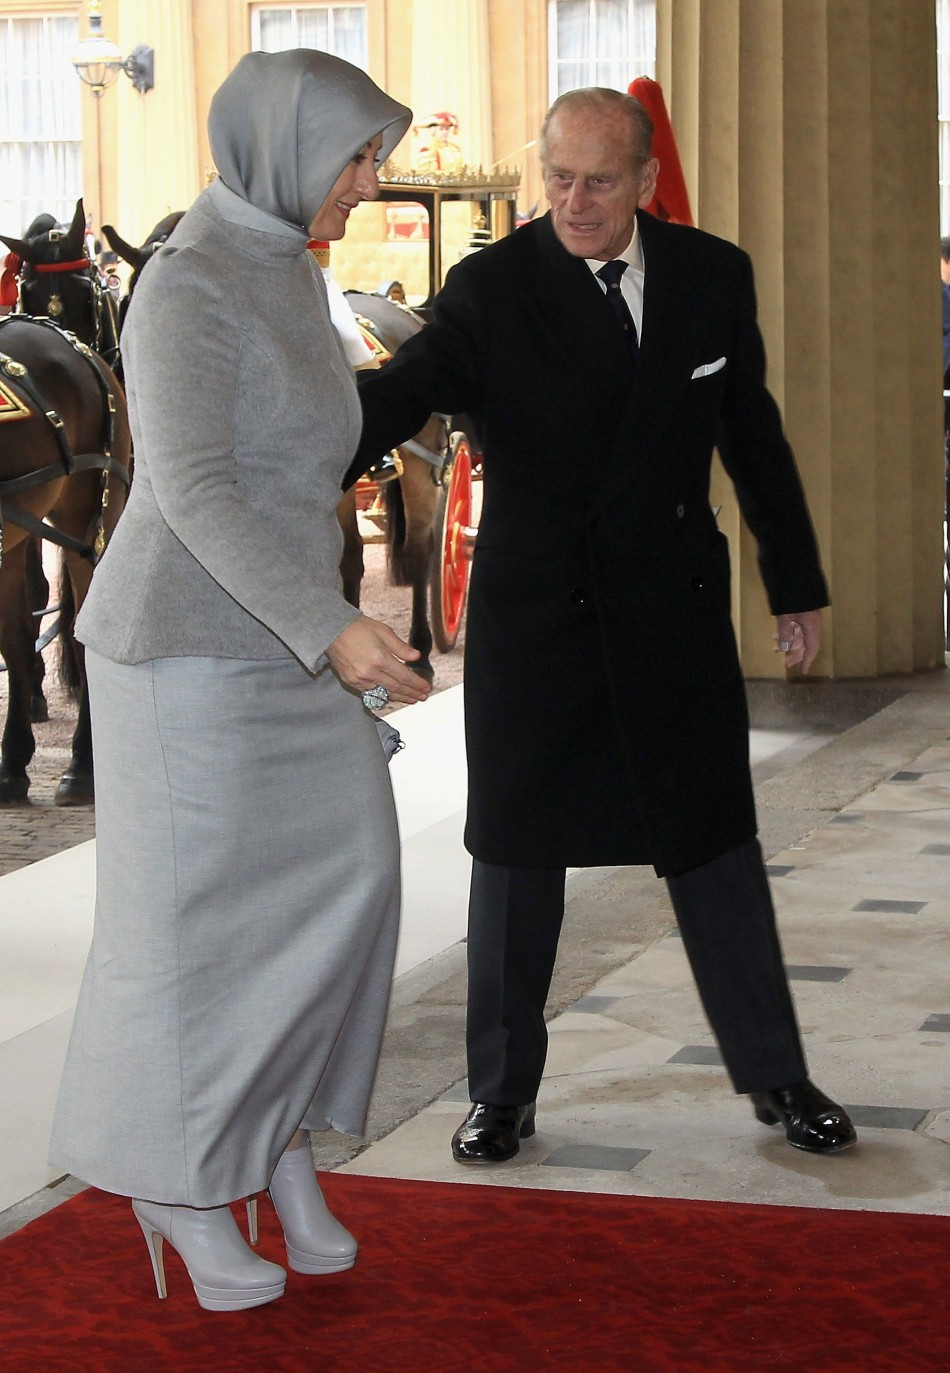 Hayrunnisa Gul (L), wife of Turkey's President Abdullah Gul, arrives at Buckingham Palace with Britain's Prince Philip during a state visit in London November 22, 2011.